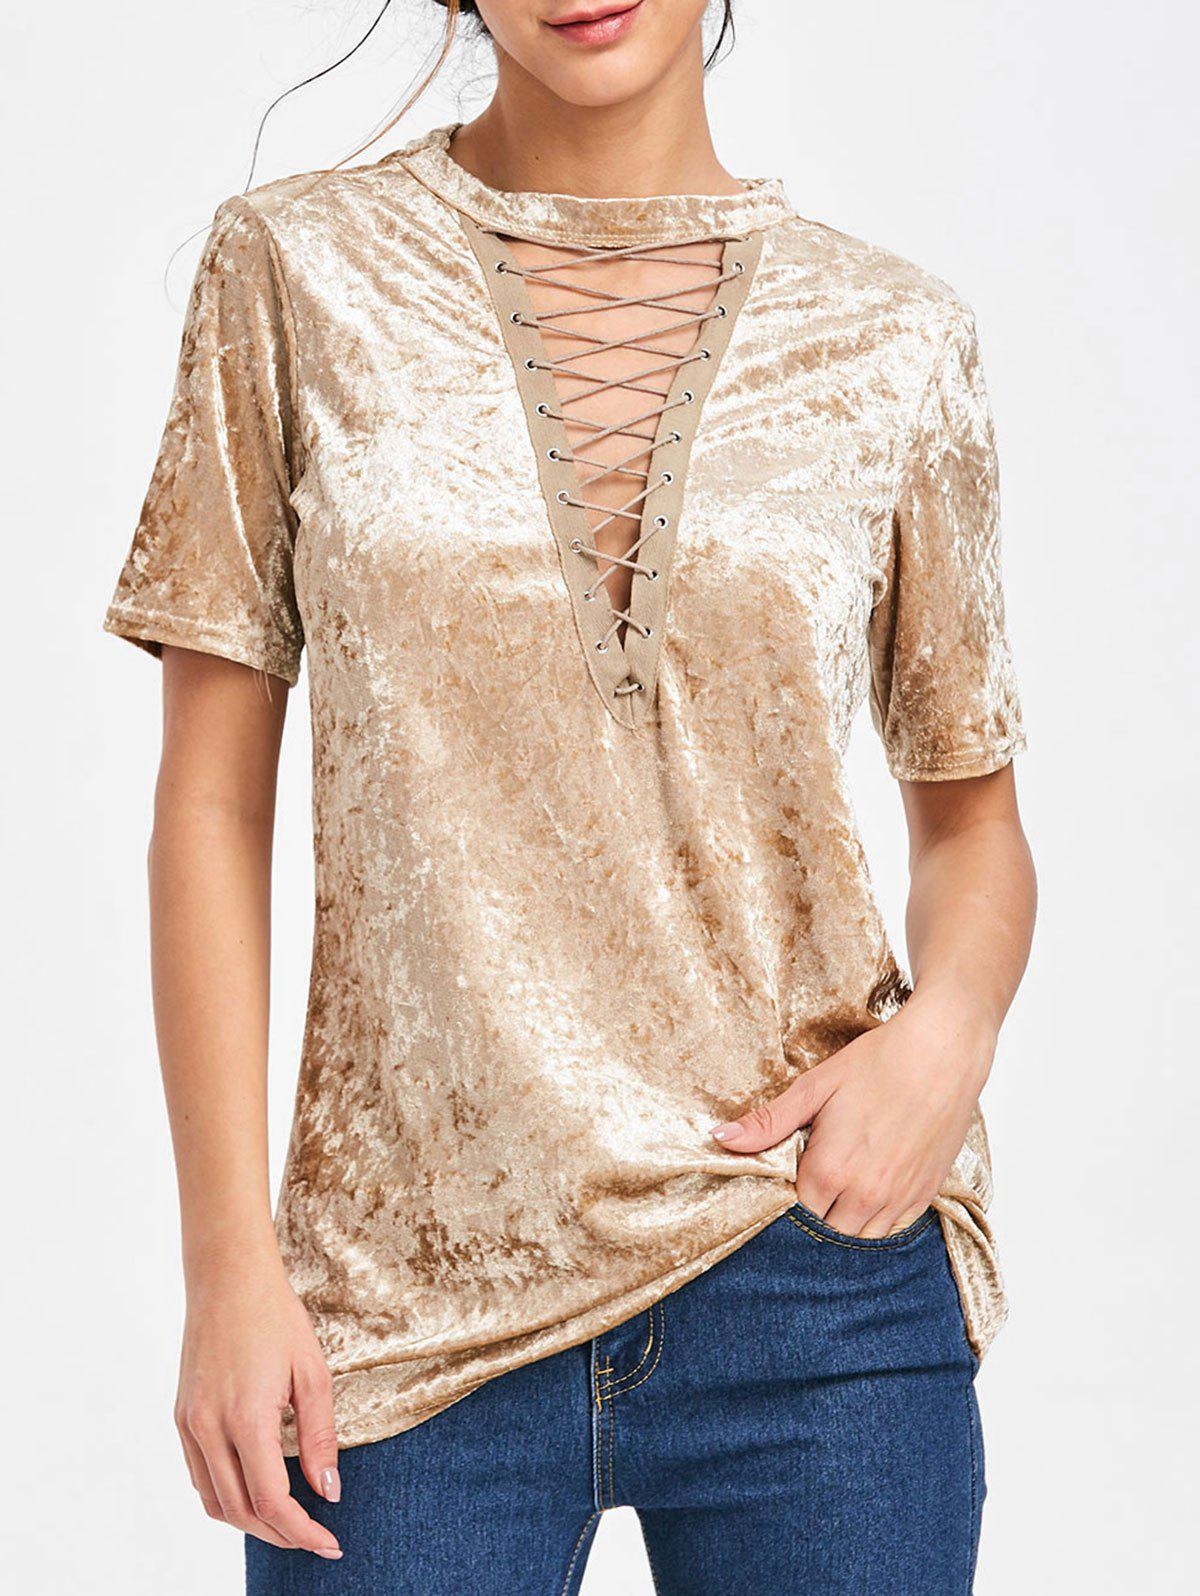 Low Cut Velvet Lace-up T-shirt - GOLDEN S